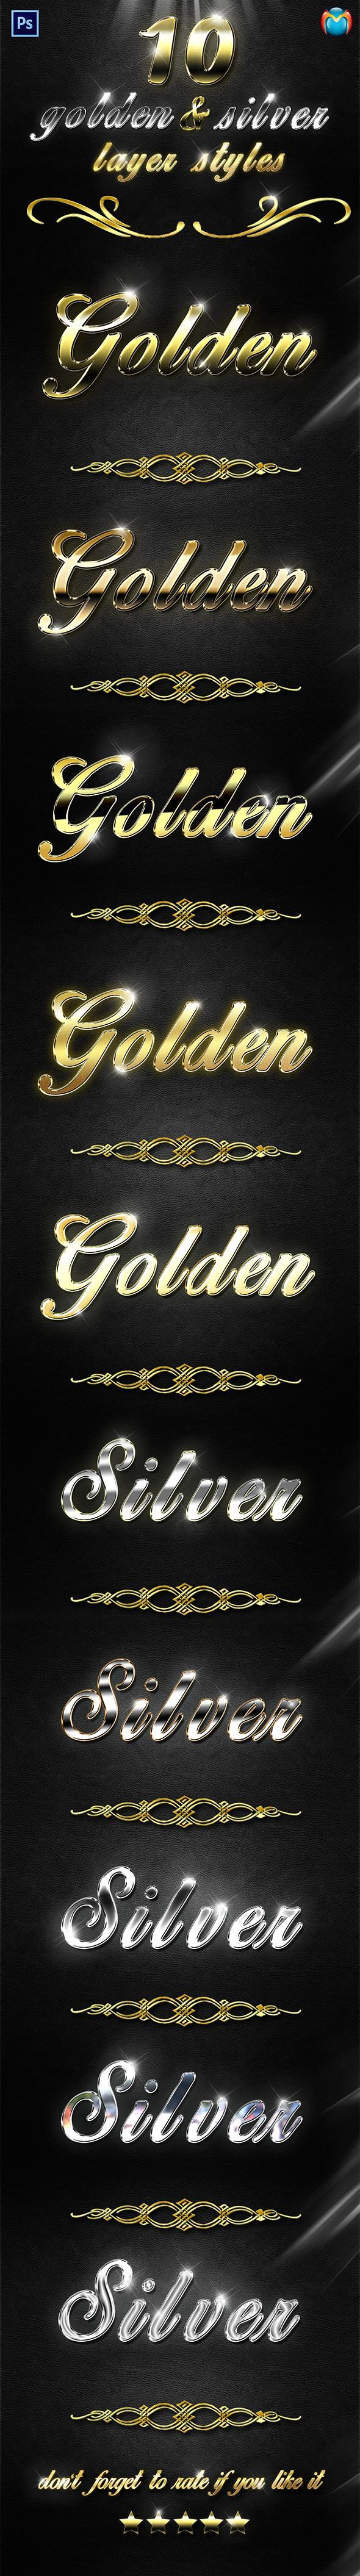 GraphicRiver Golden & Silver Layer Styles V.2 9440356